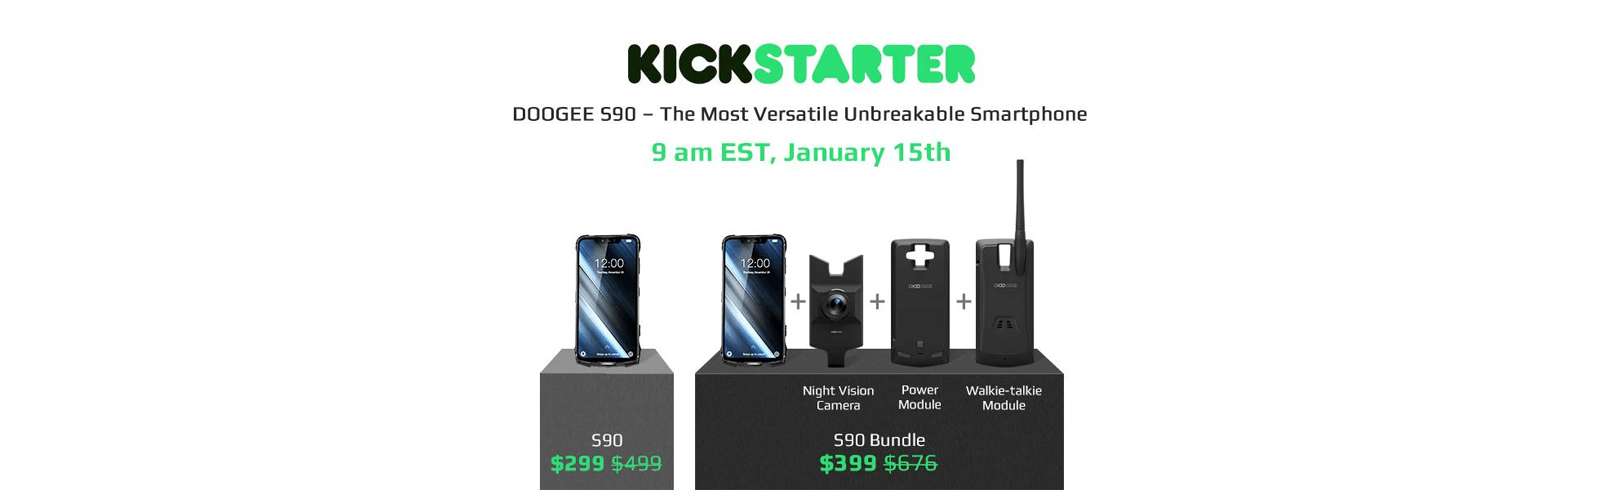 The Doogee S90 Kickstarter page is now live